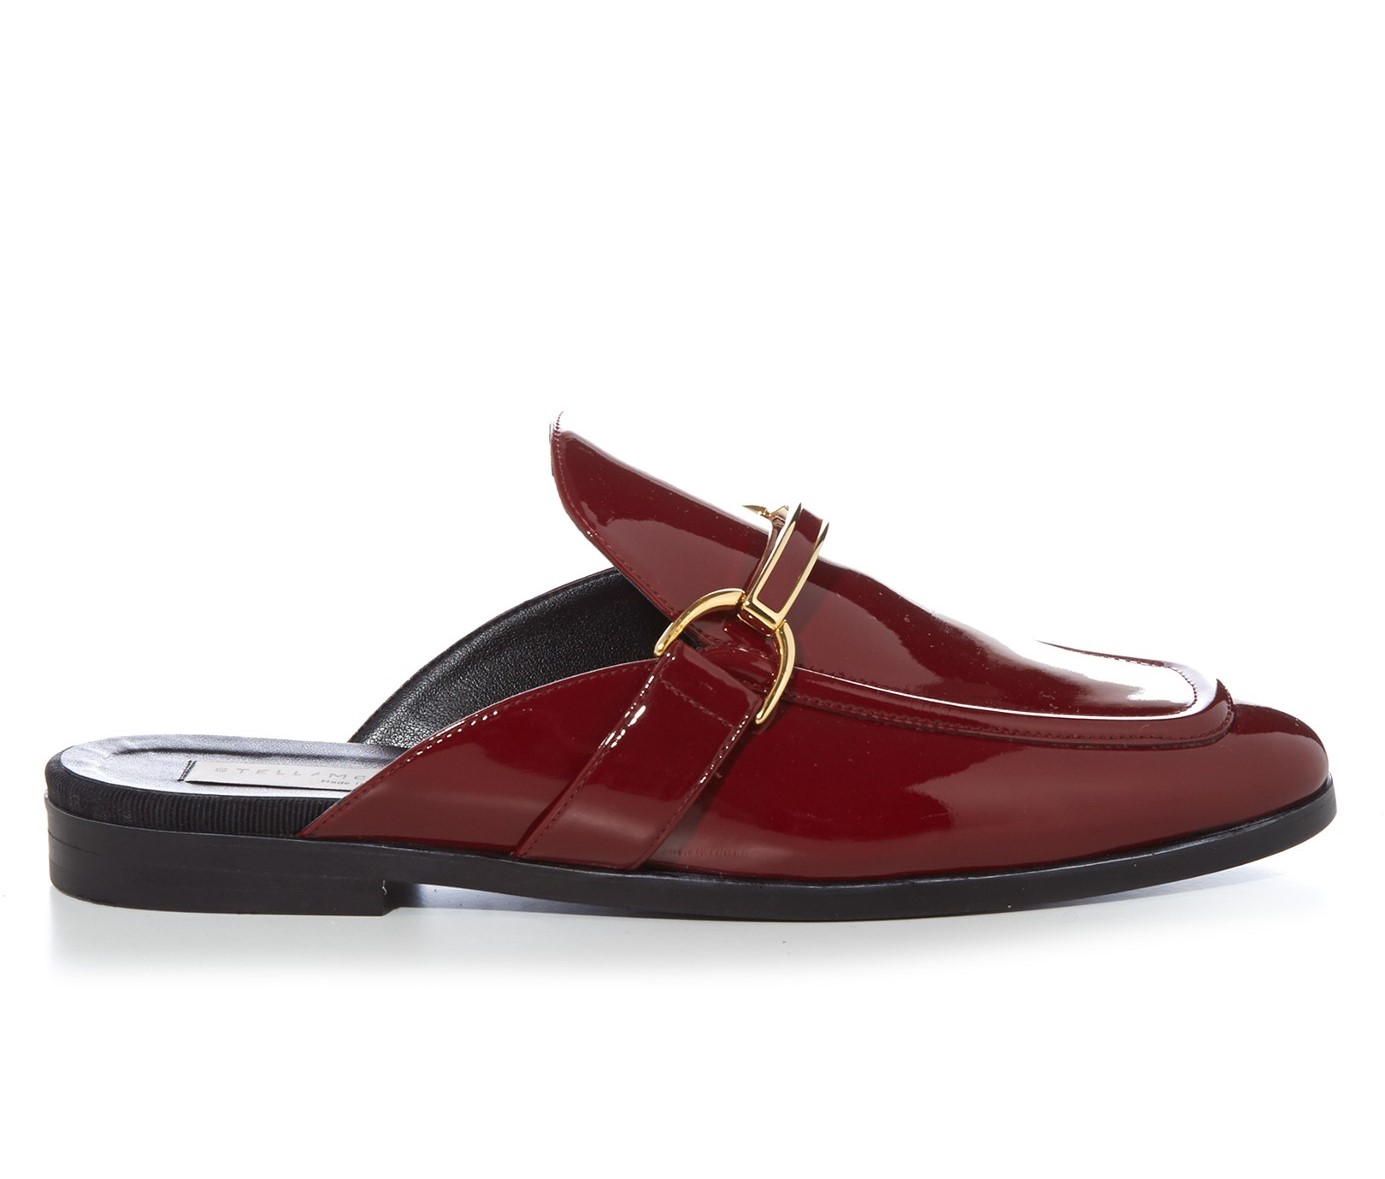 CASUAL CHIC: STELLA MCCARTNEY Holzer slip-on loafers